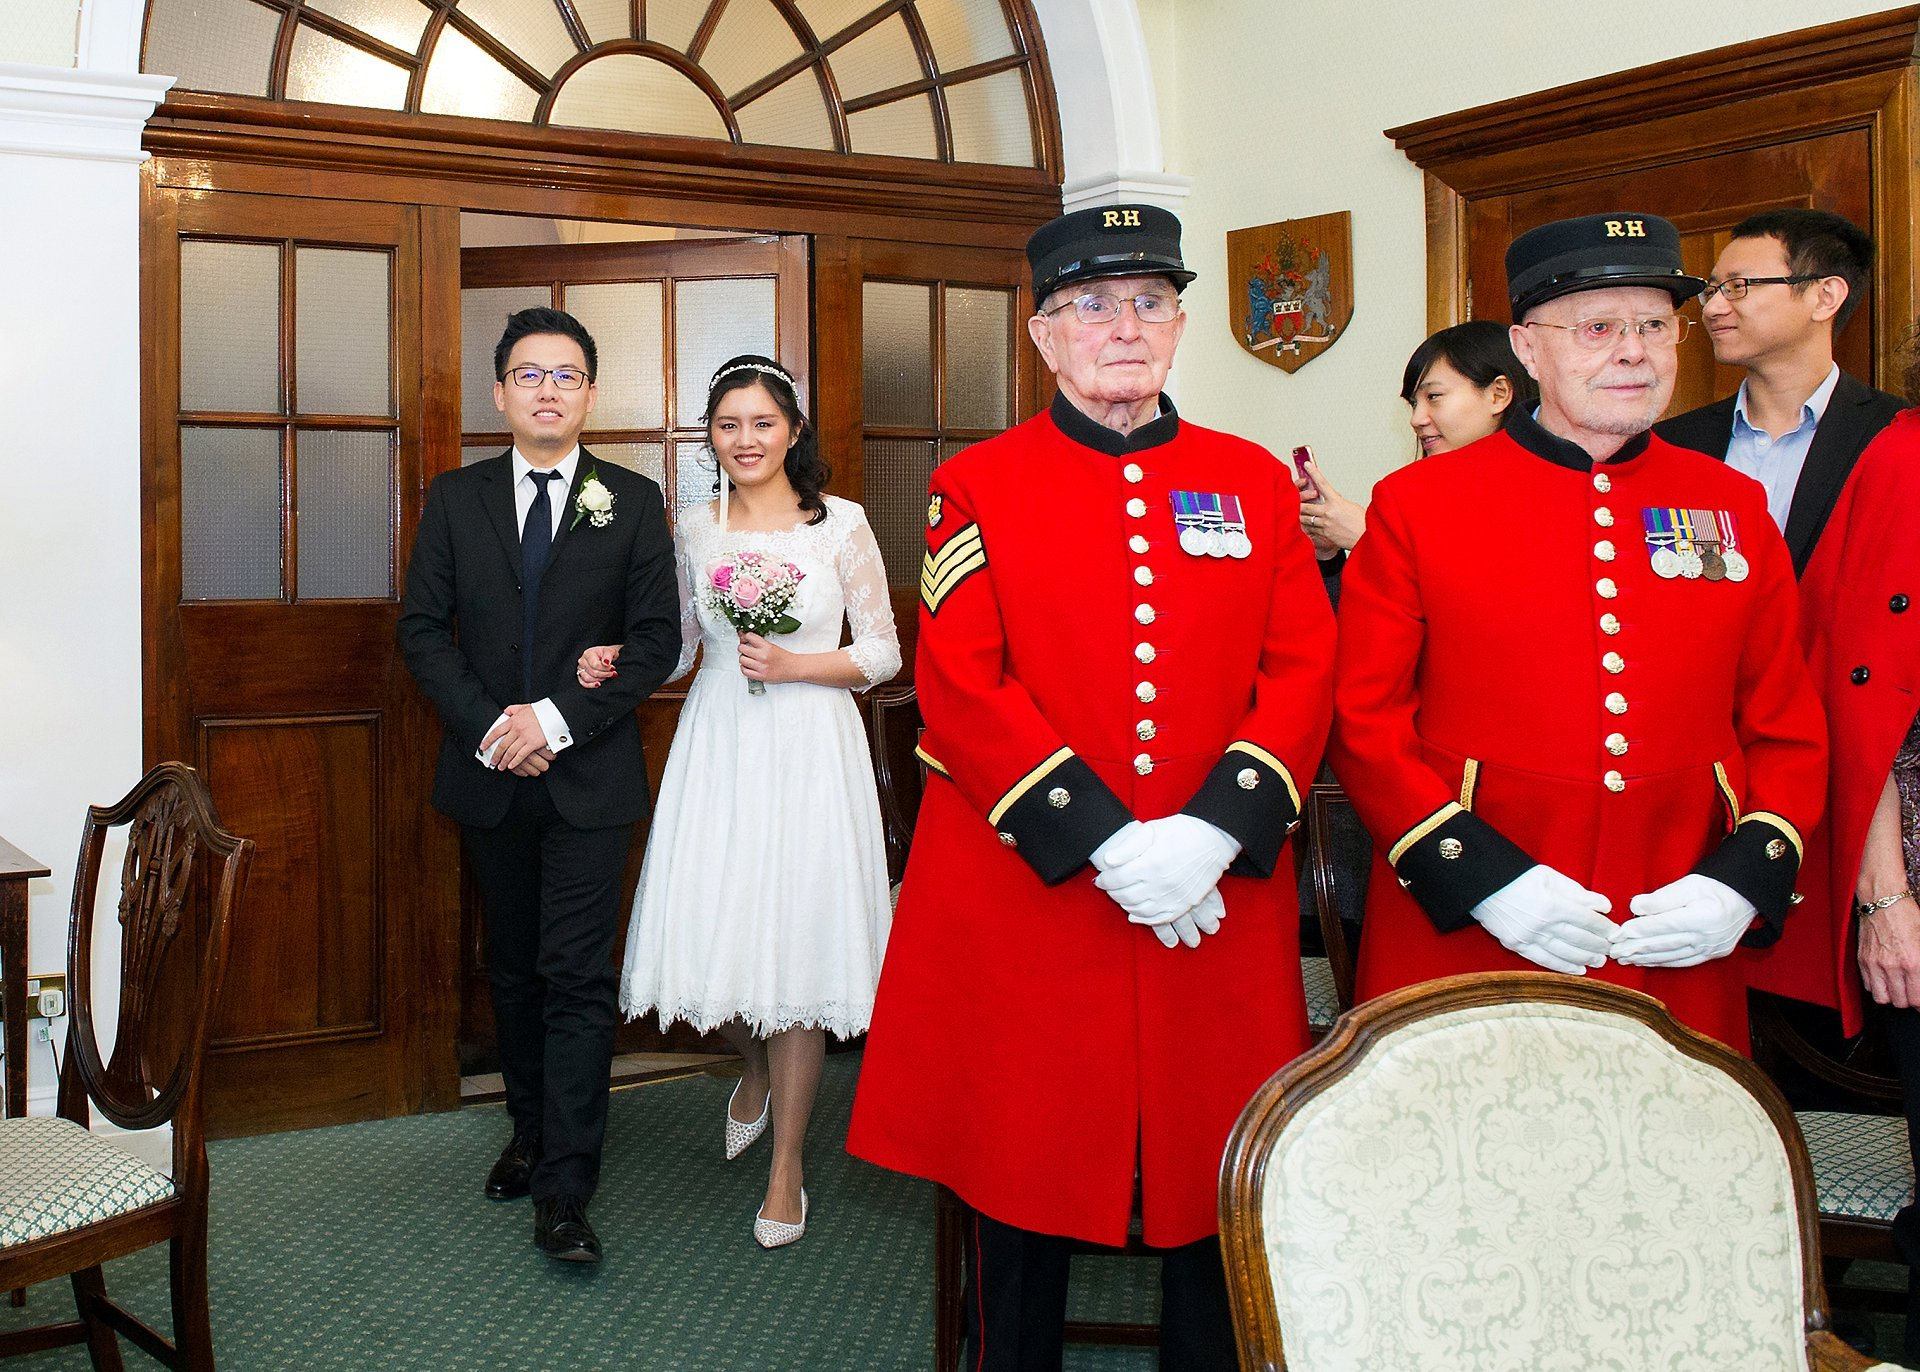 rossetti room ceremony in chelsea old town hall and a couple entering